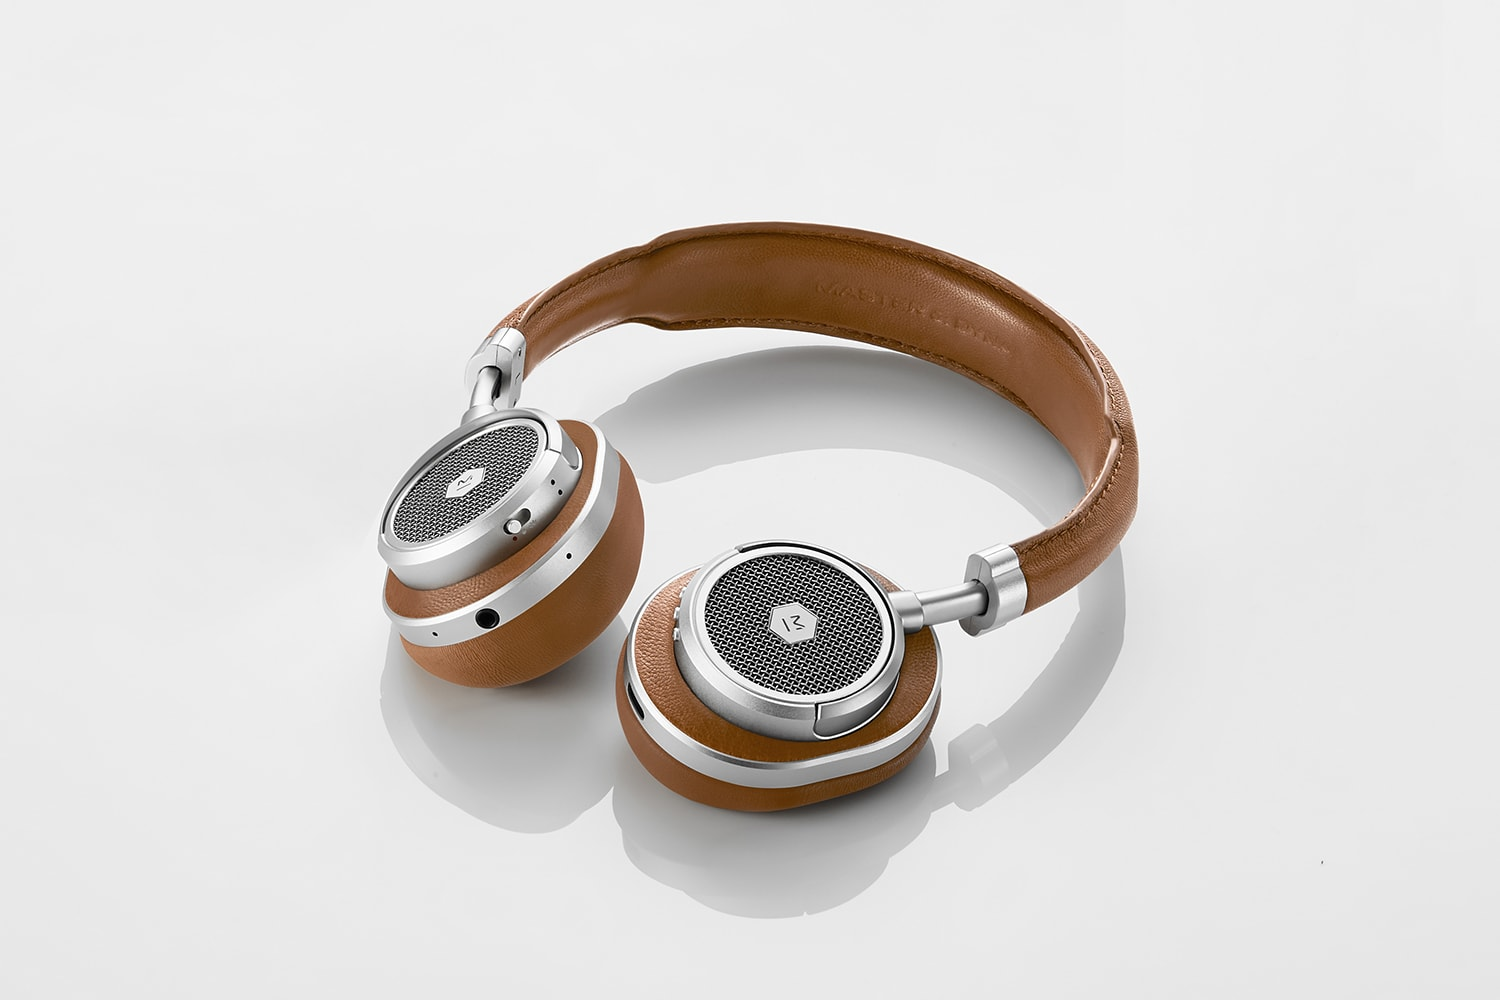 ae6b59f02cc ... Master & Dynamic debuted its first wireless headphones with the  over-ear MW60. Today, the company is adding to that product line with the  on-ear MW50.